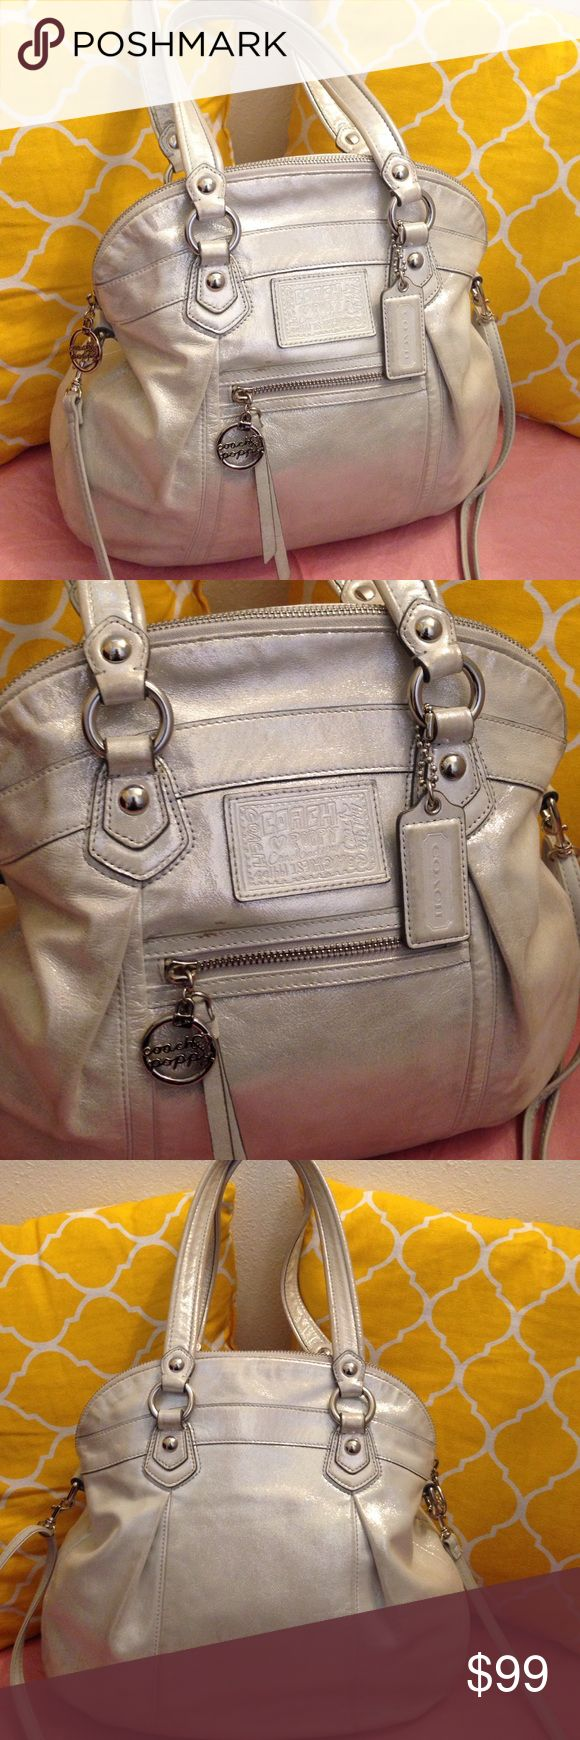 Coach Poppy Glam Metallic Silver Opal Shiny and shimmery. Has detachable long strap and coach hangtag. Medium size holds a lot. With pockets inside and outside too. Silver metallic. Has two spots on front i believe can be wipe off. Coach poppy collection. Authentic Coach Poppy. Coach Bags Satchels